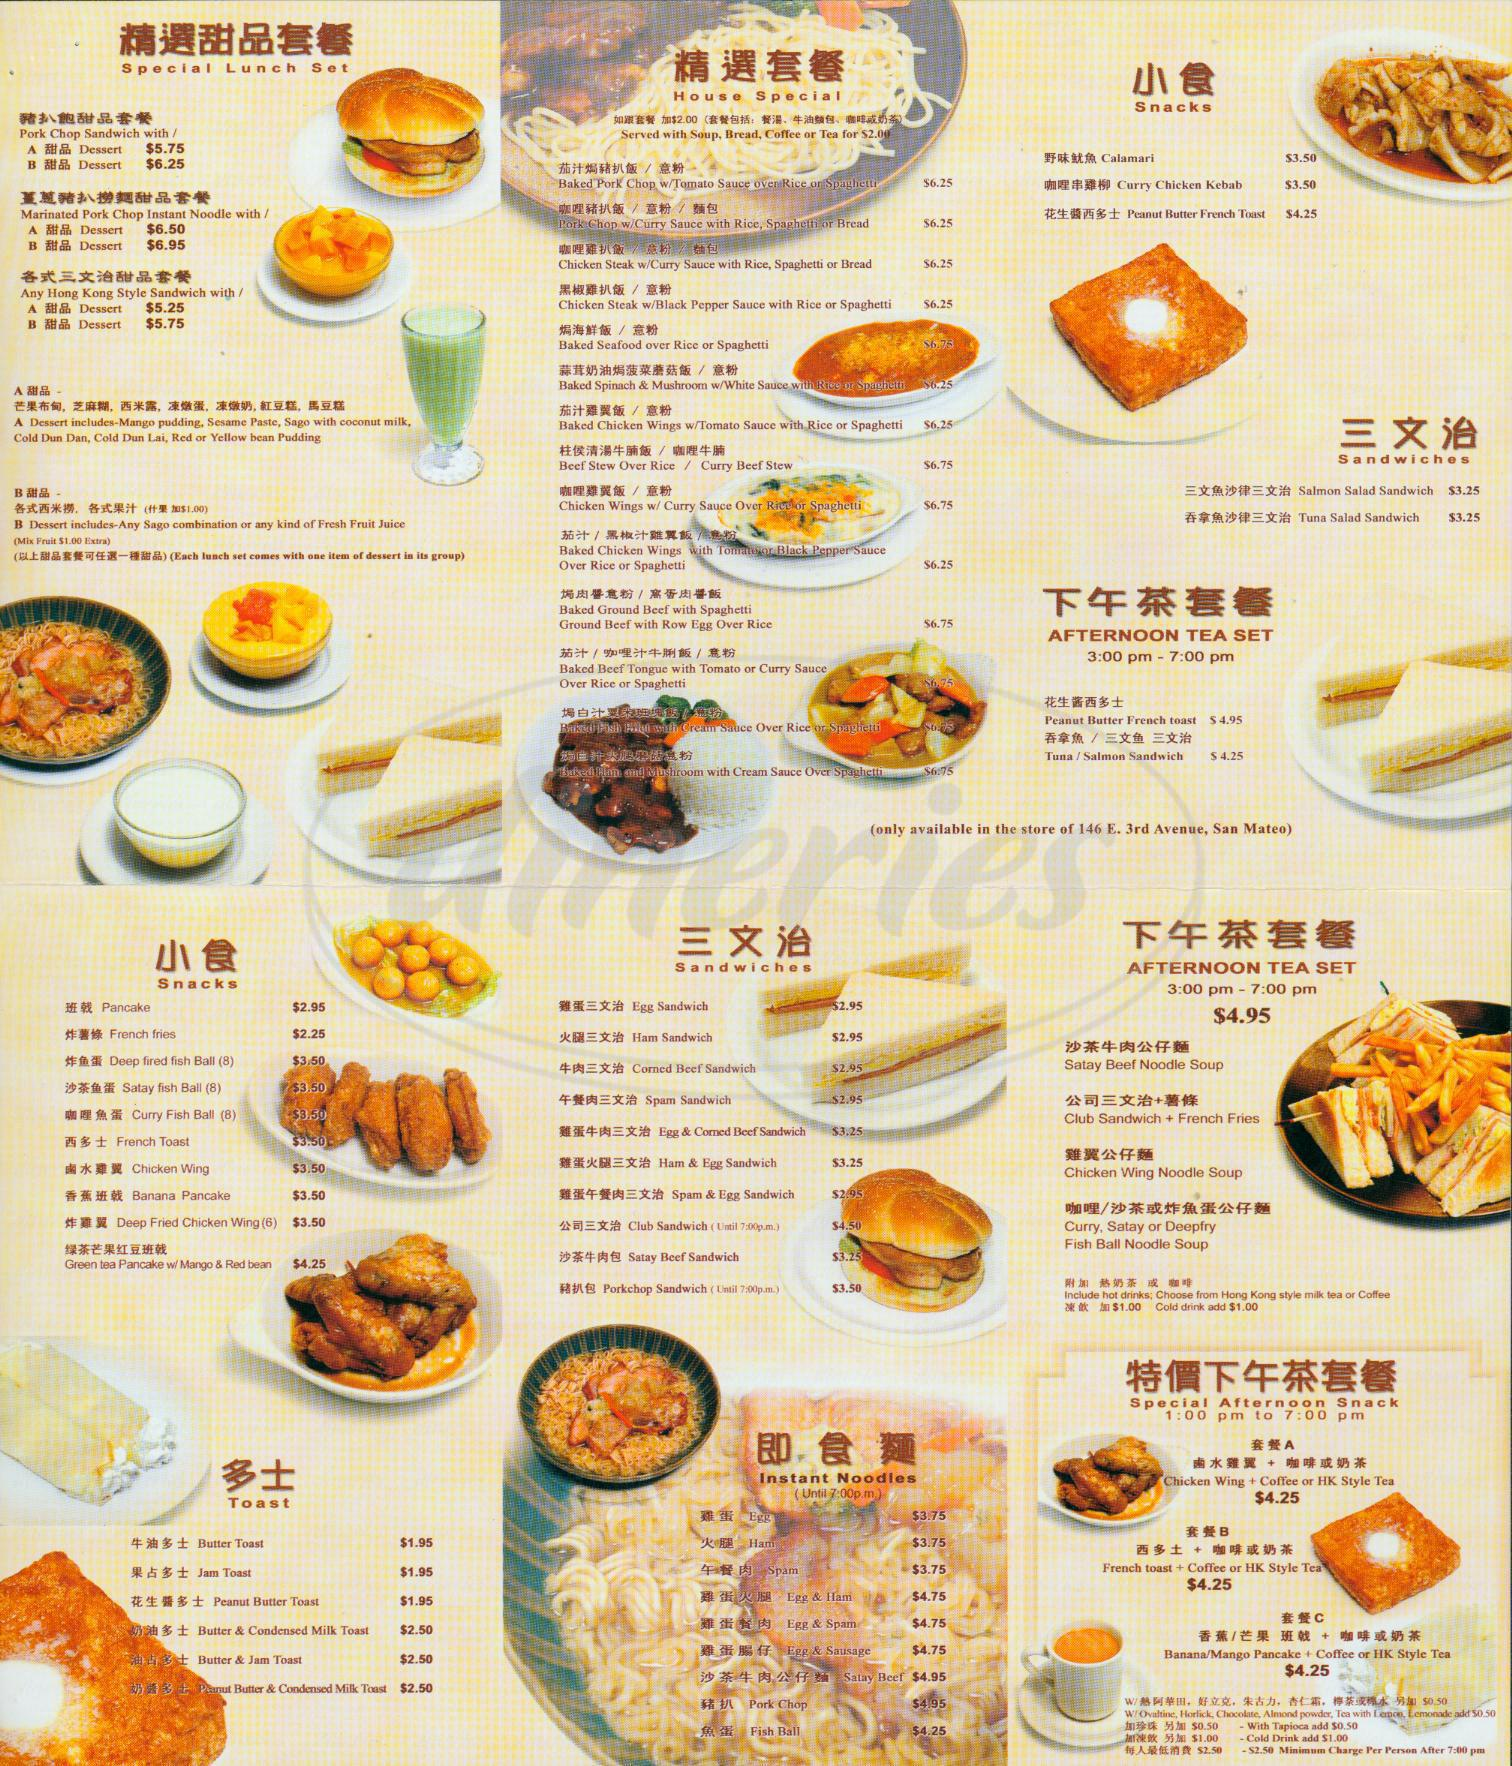 menu for Golden Island Café